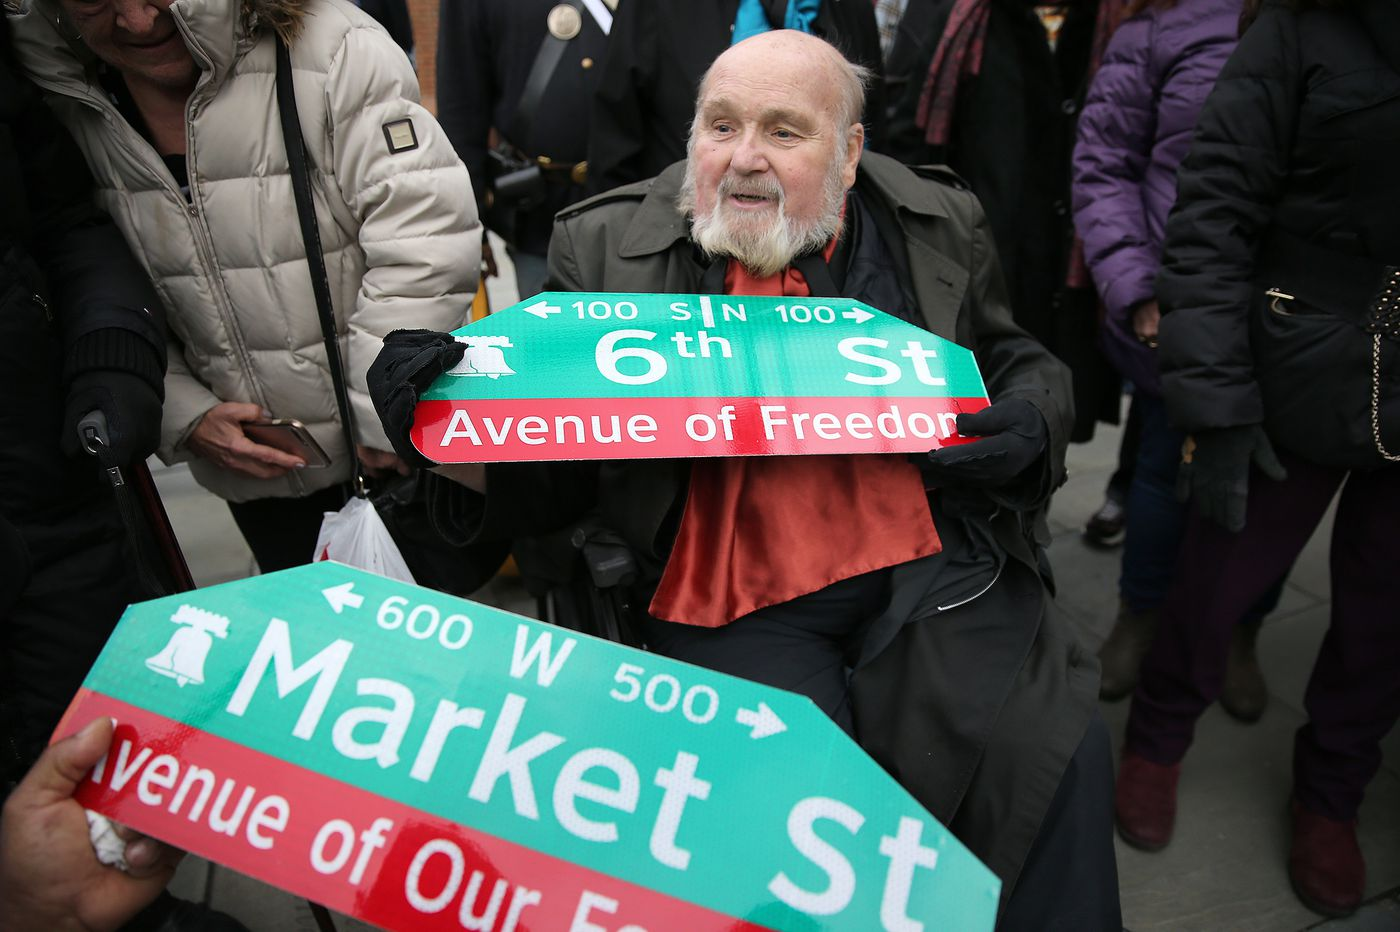 Philly renames parts of Market and Sixth Streets in honor of founding fathers, black history